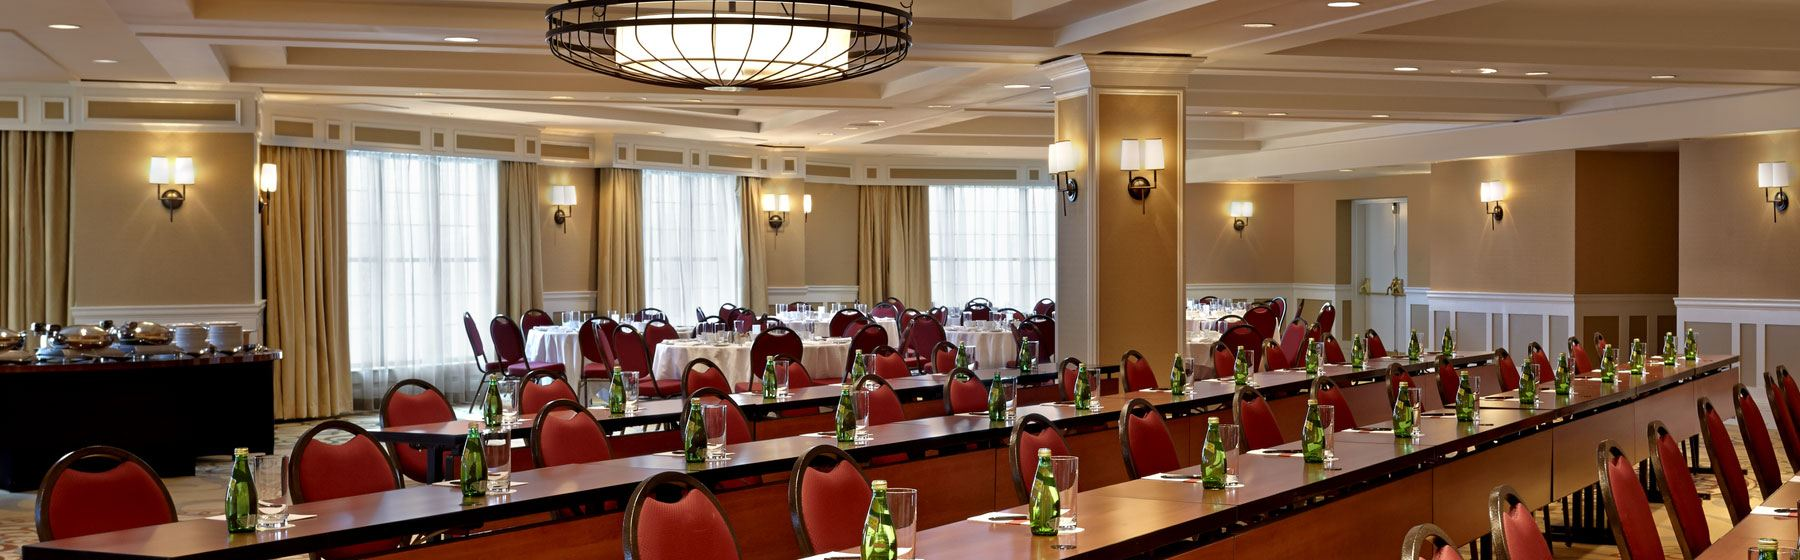 Meetings venues at Algonquin resort, Andrews By The Sea